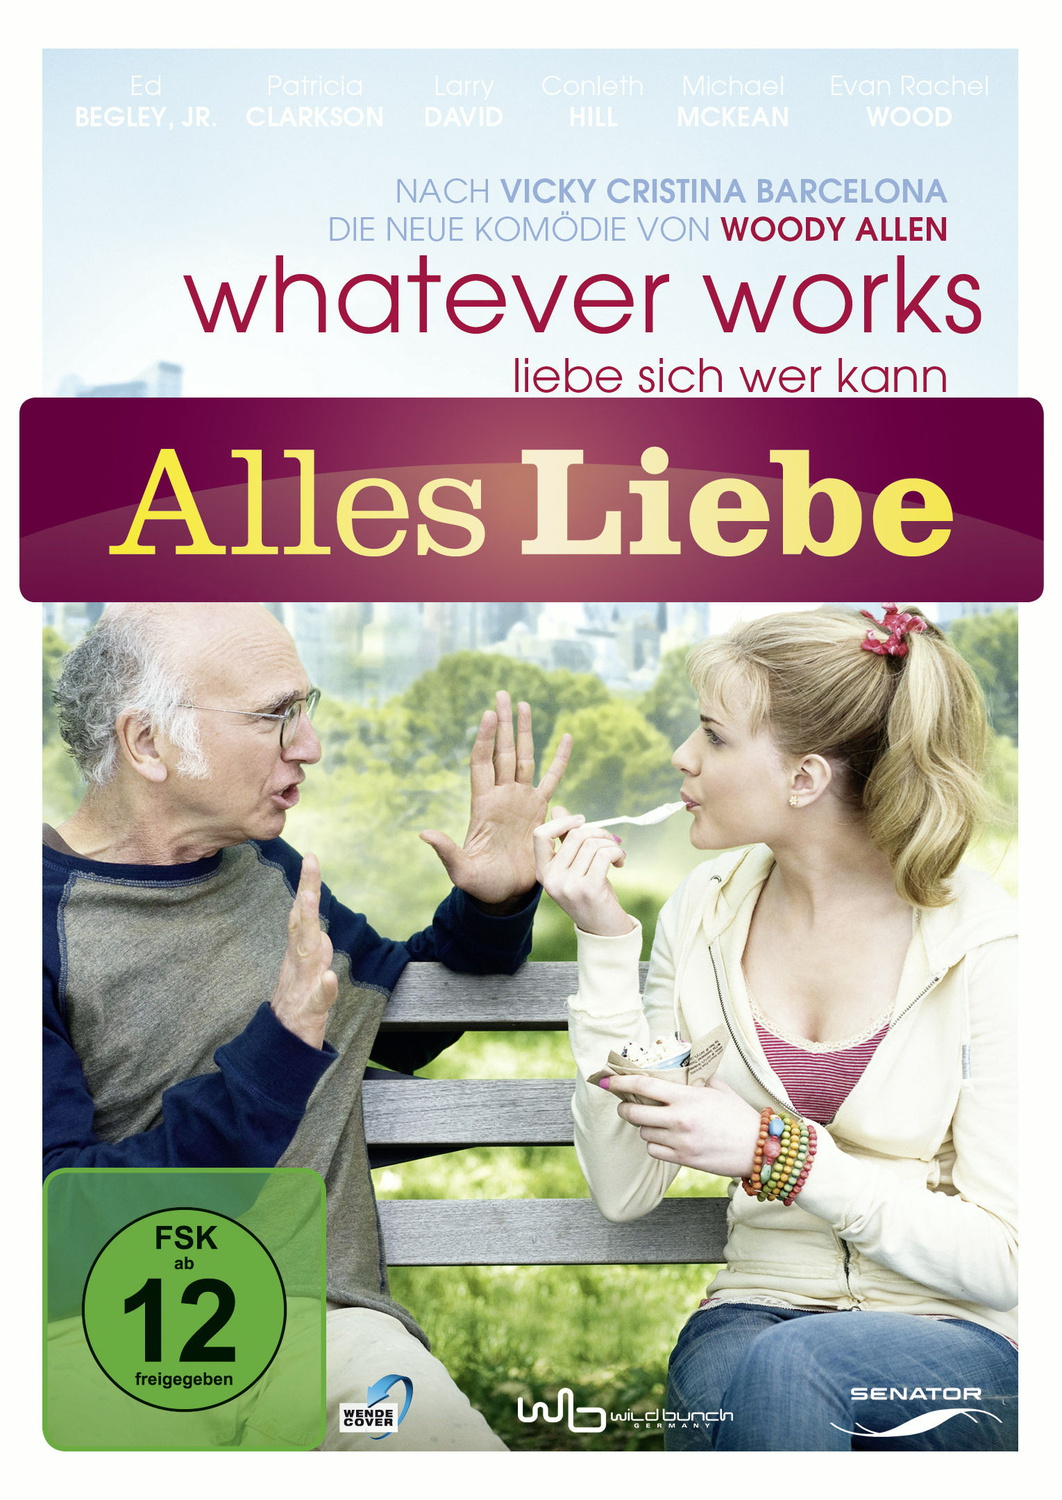 Whatever Works [Alles Liebe Edition]